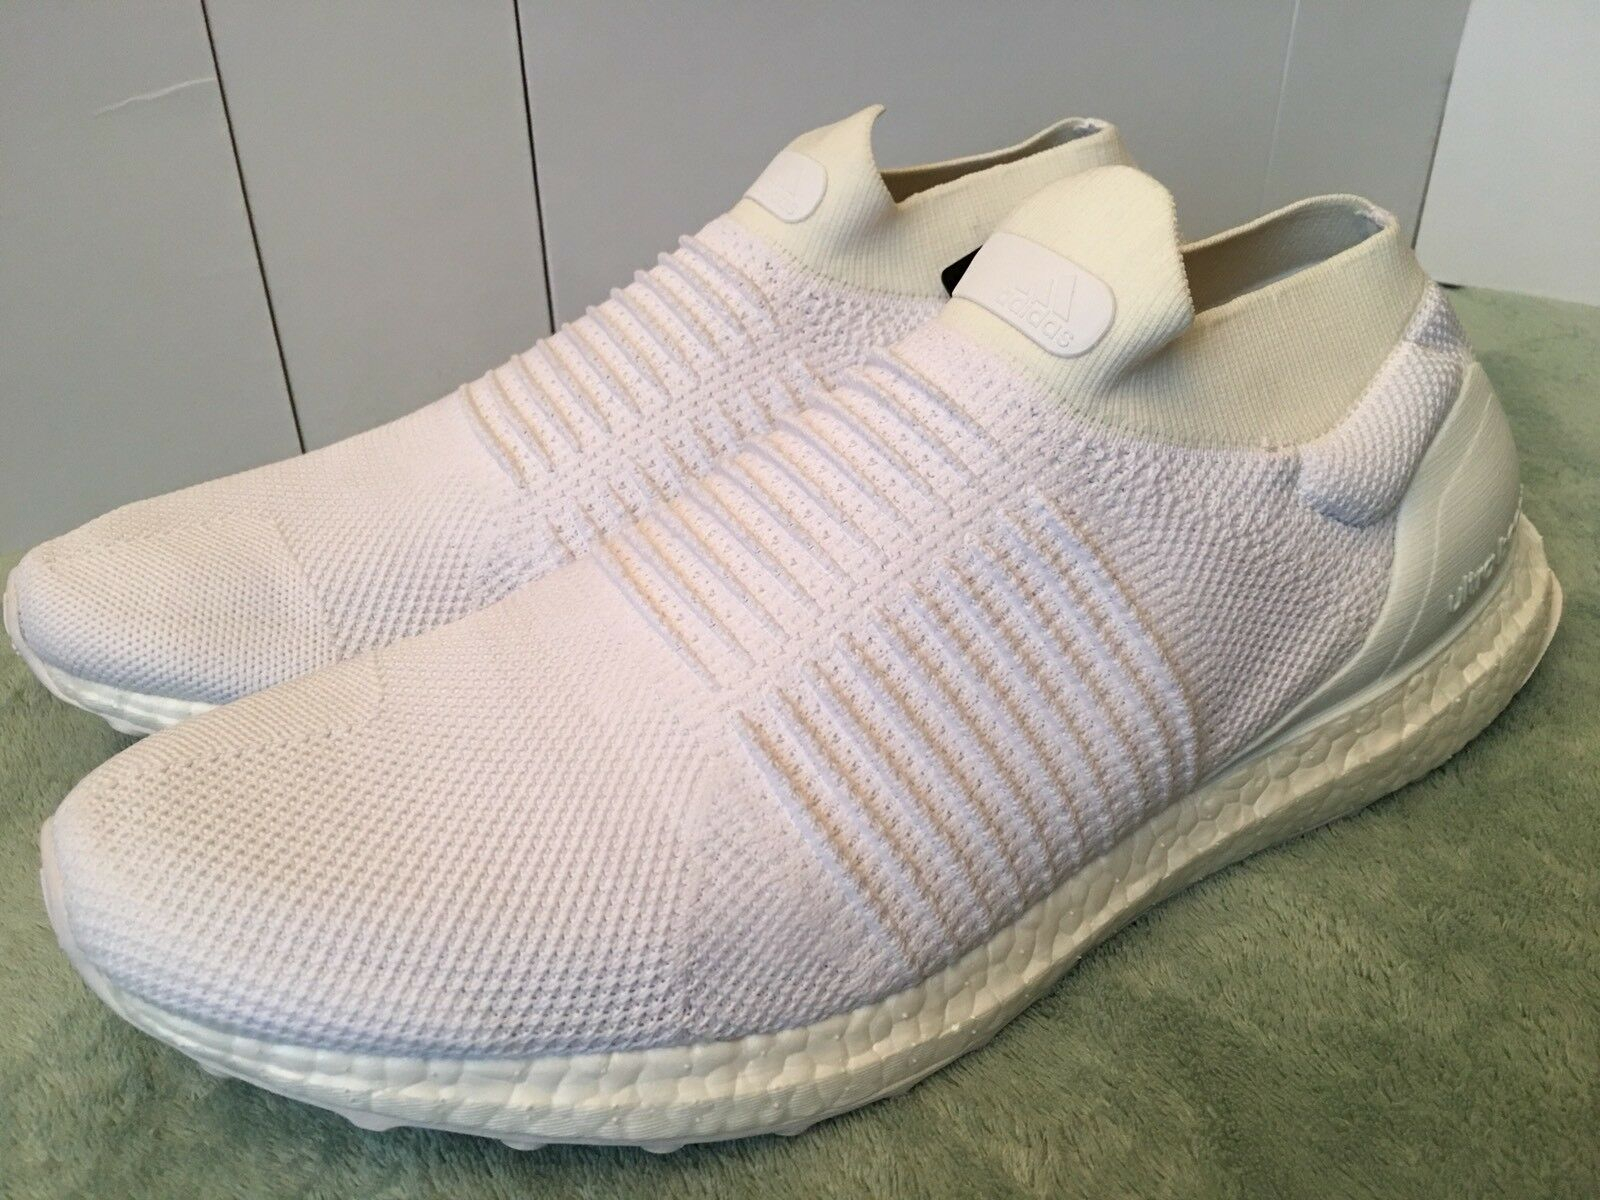 Running Mens Adidas Ultraboost Shoes Laceless qtY1waY